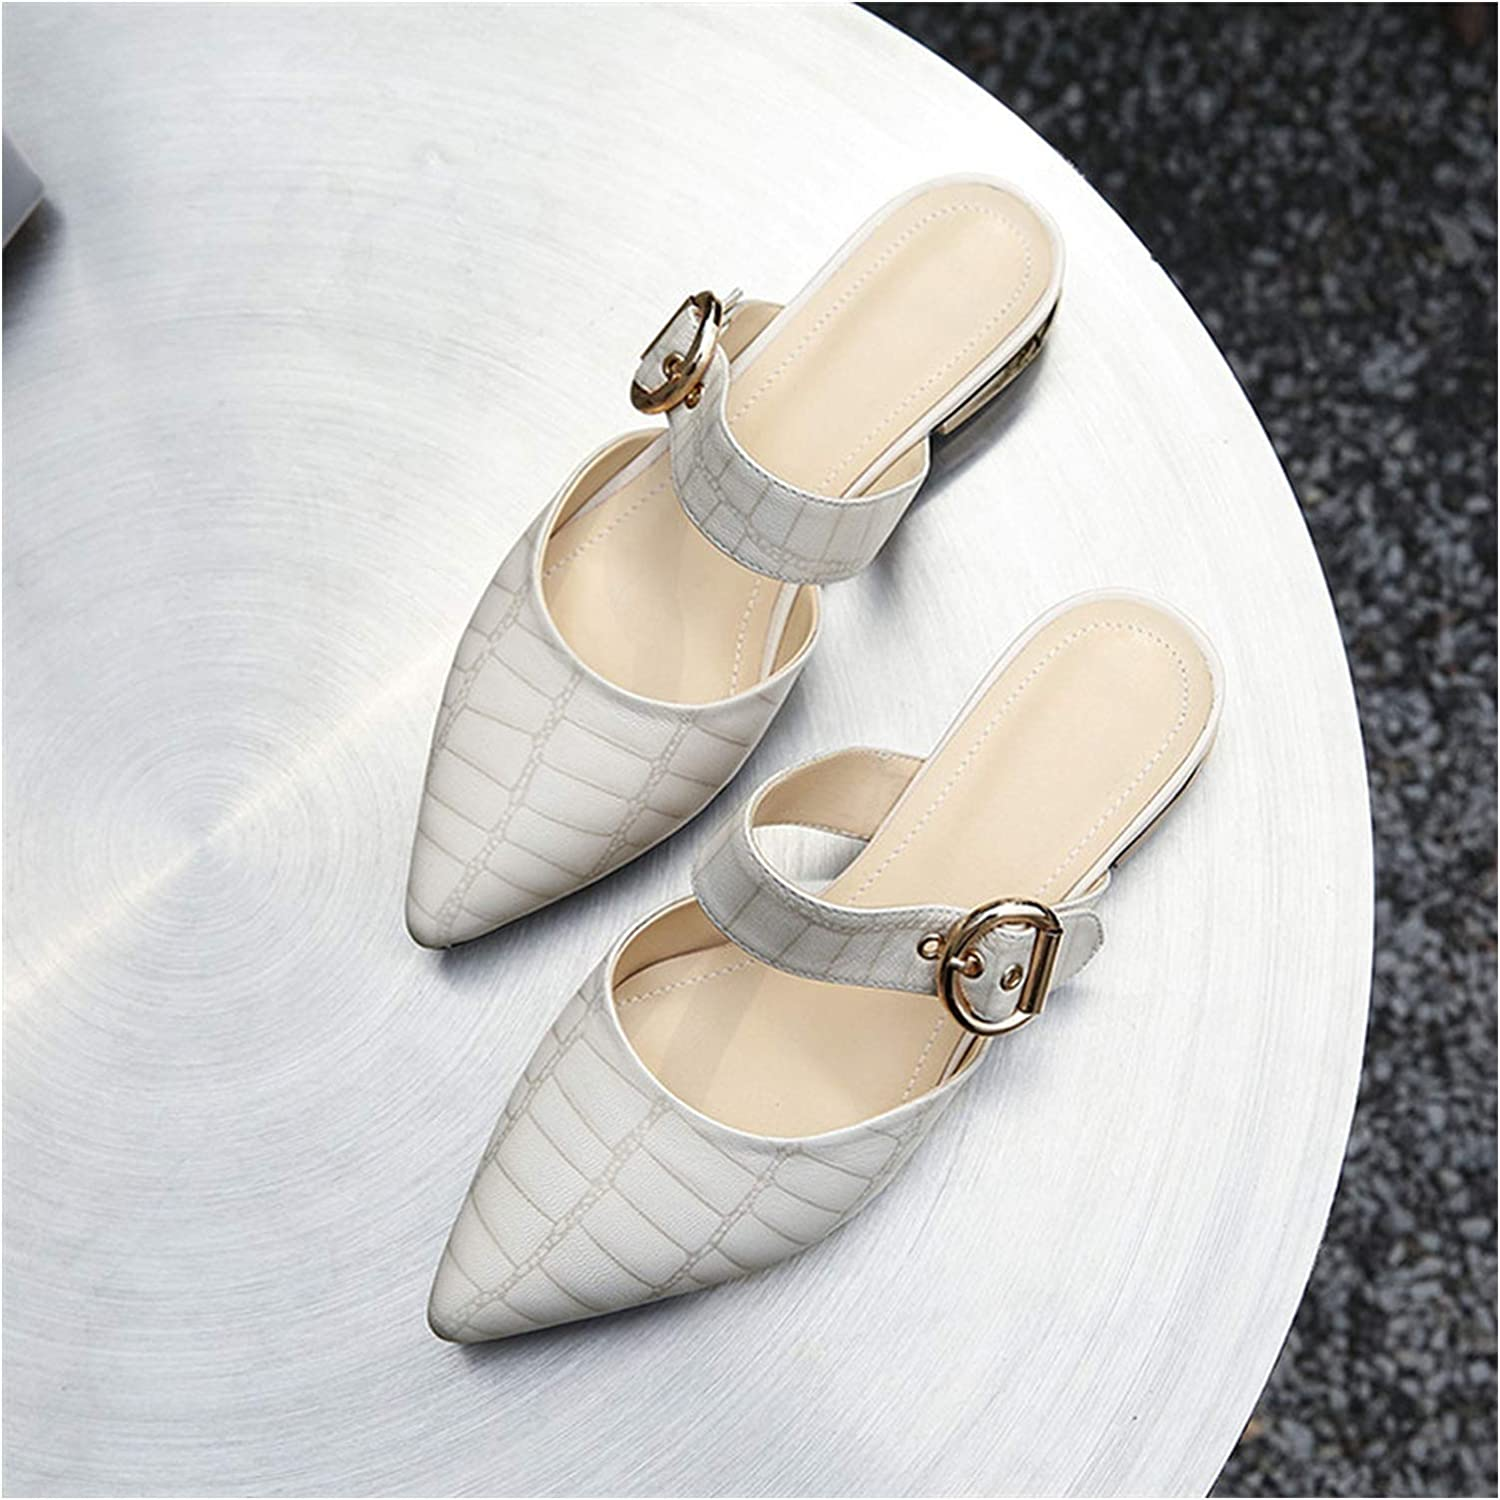 Longbao Fashion Leather shoes Women Low Heels Sandals Fashion Close Toe Summer